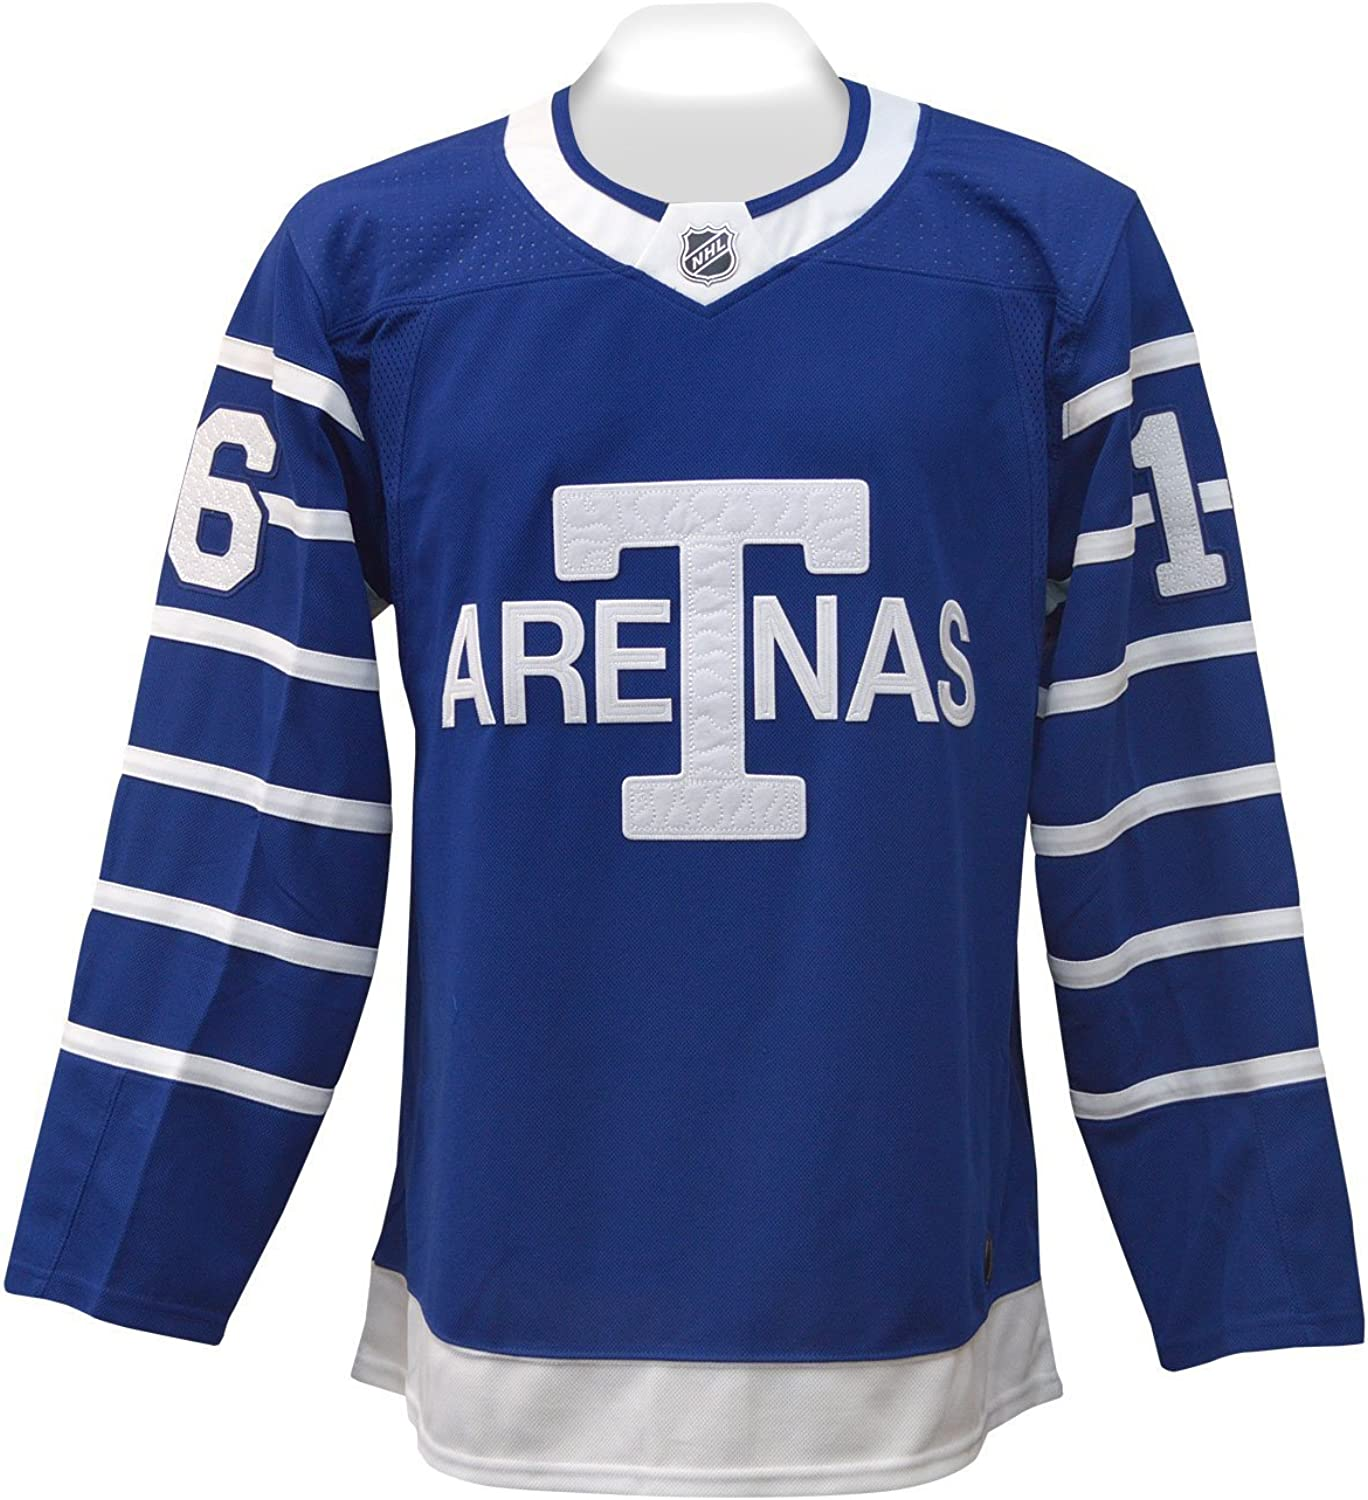 Men's Tgoldnto Arenas adidas blueee Throwback Authentic Hockey – Mitch Marner Jersey